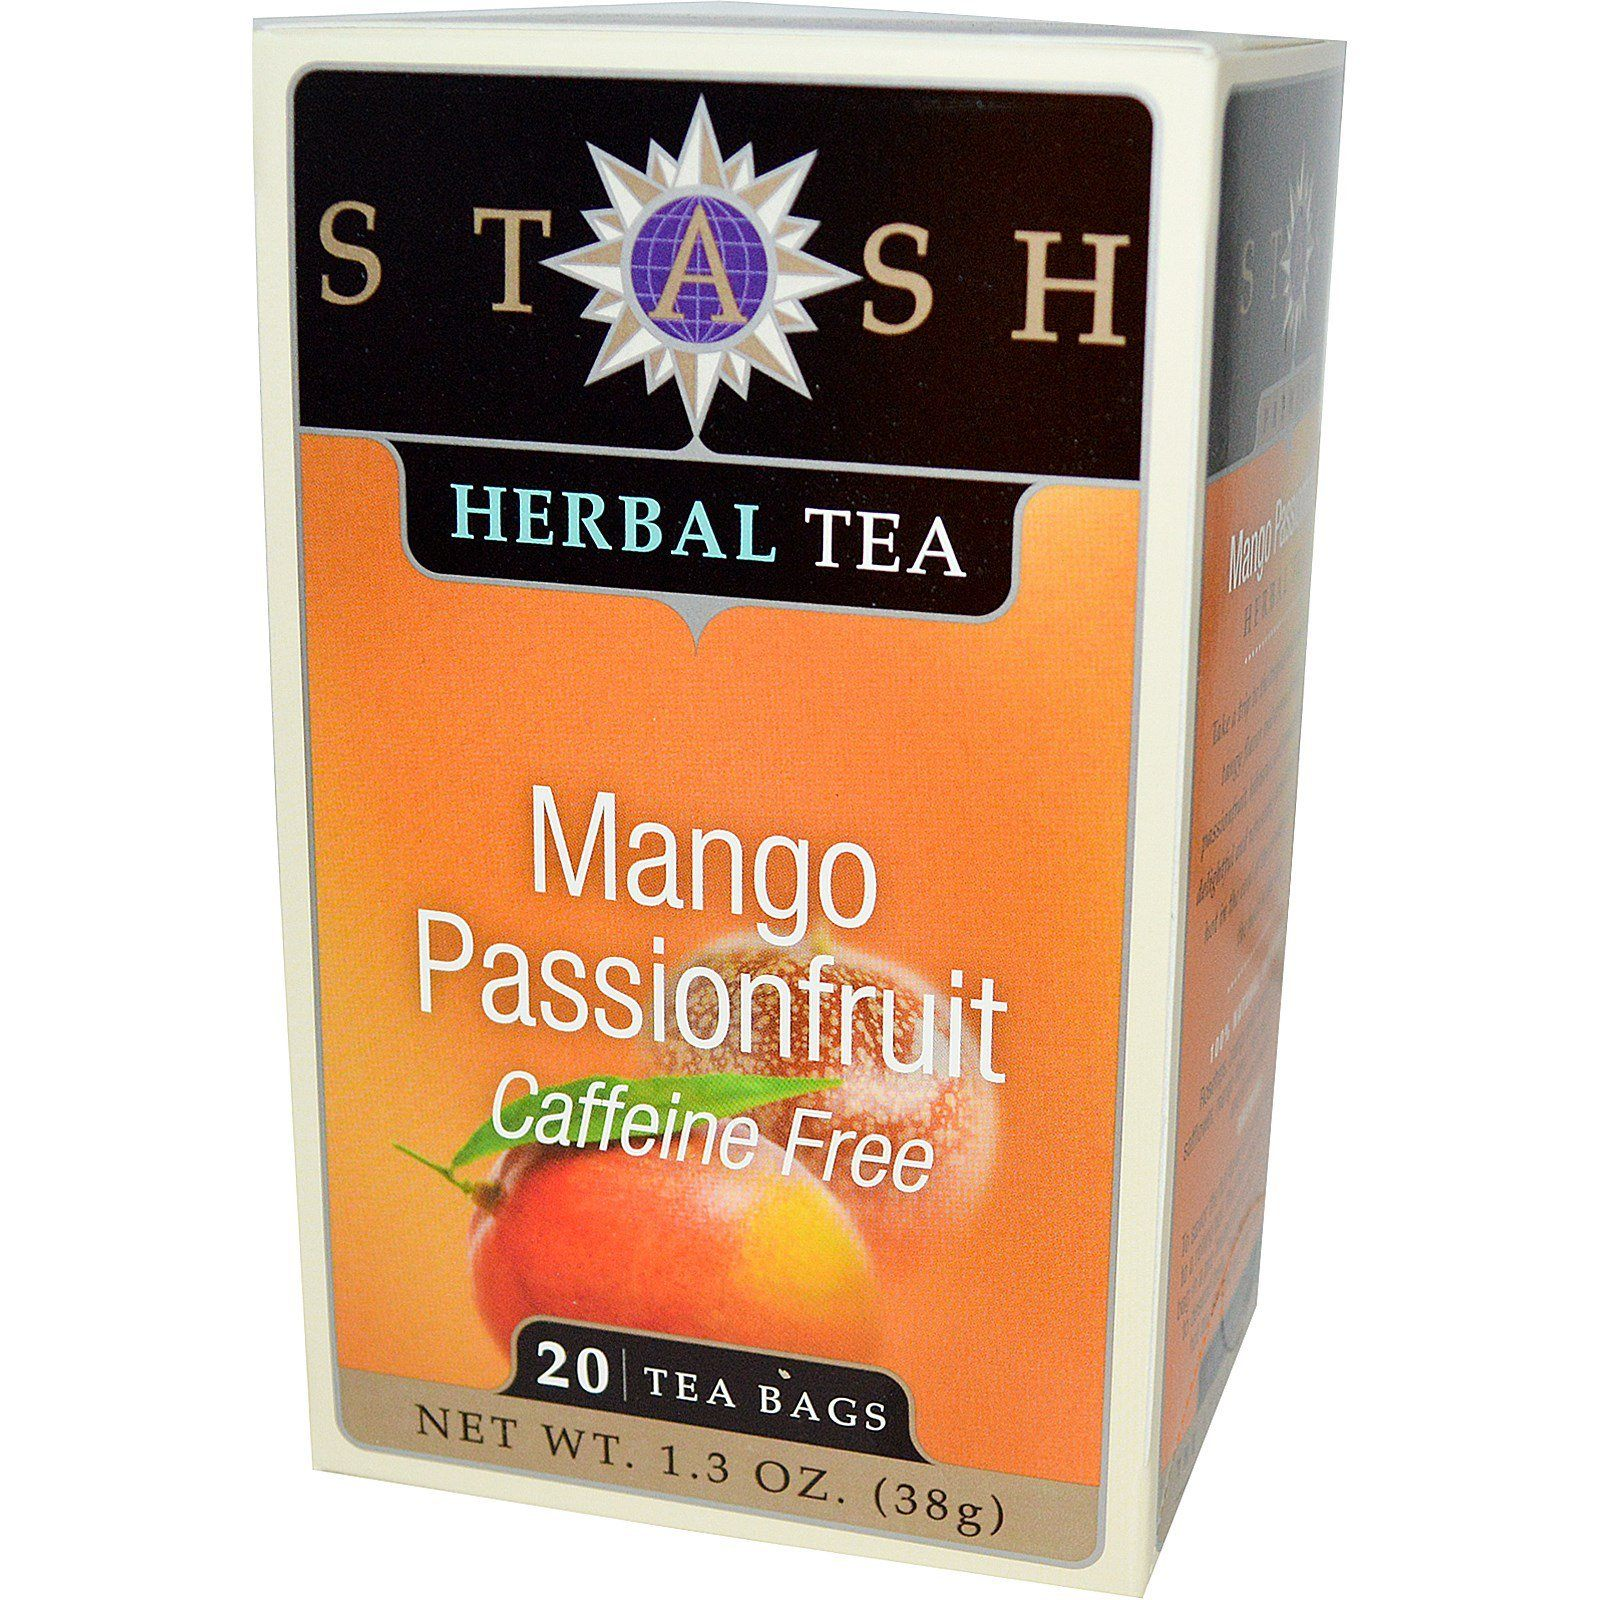 Food & Drink - Stash - Mango Passionfruit Herbal Tea, 20 Bags